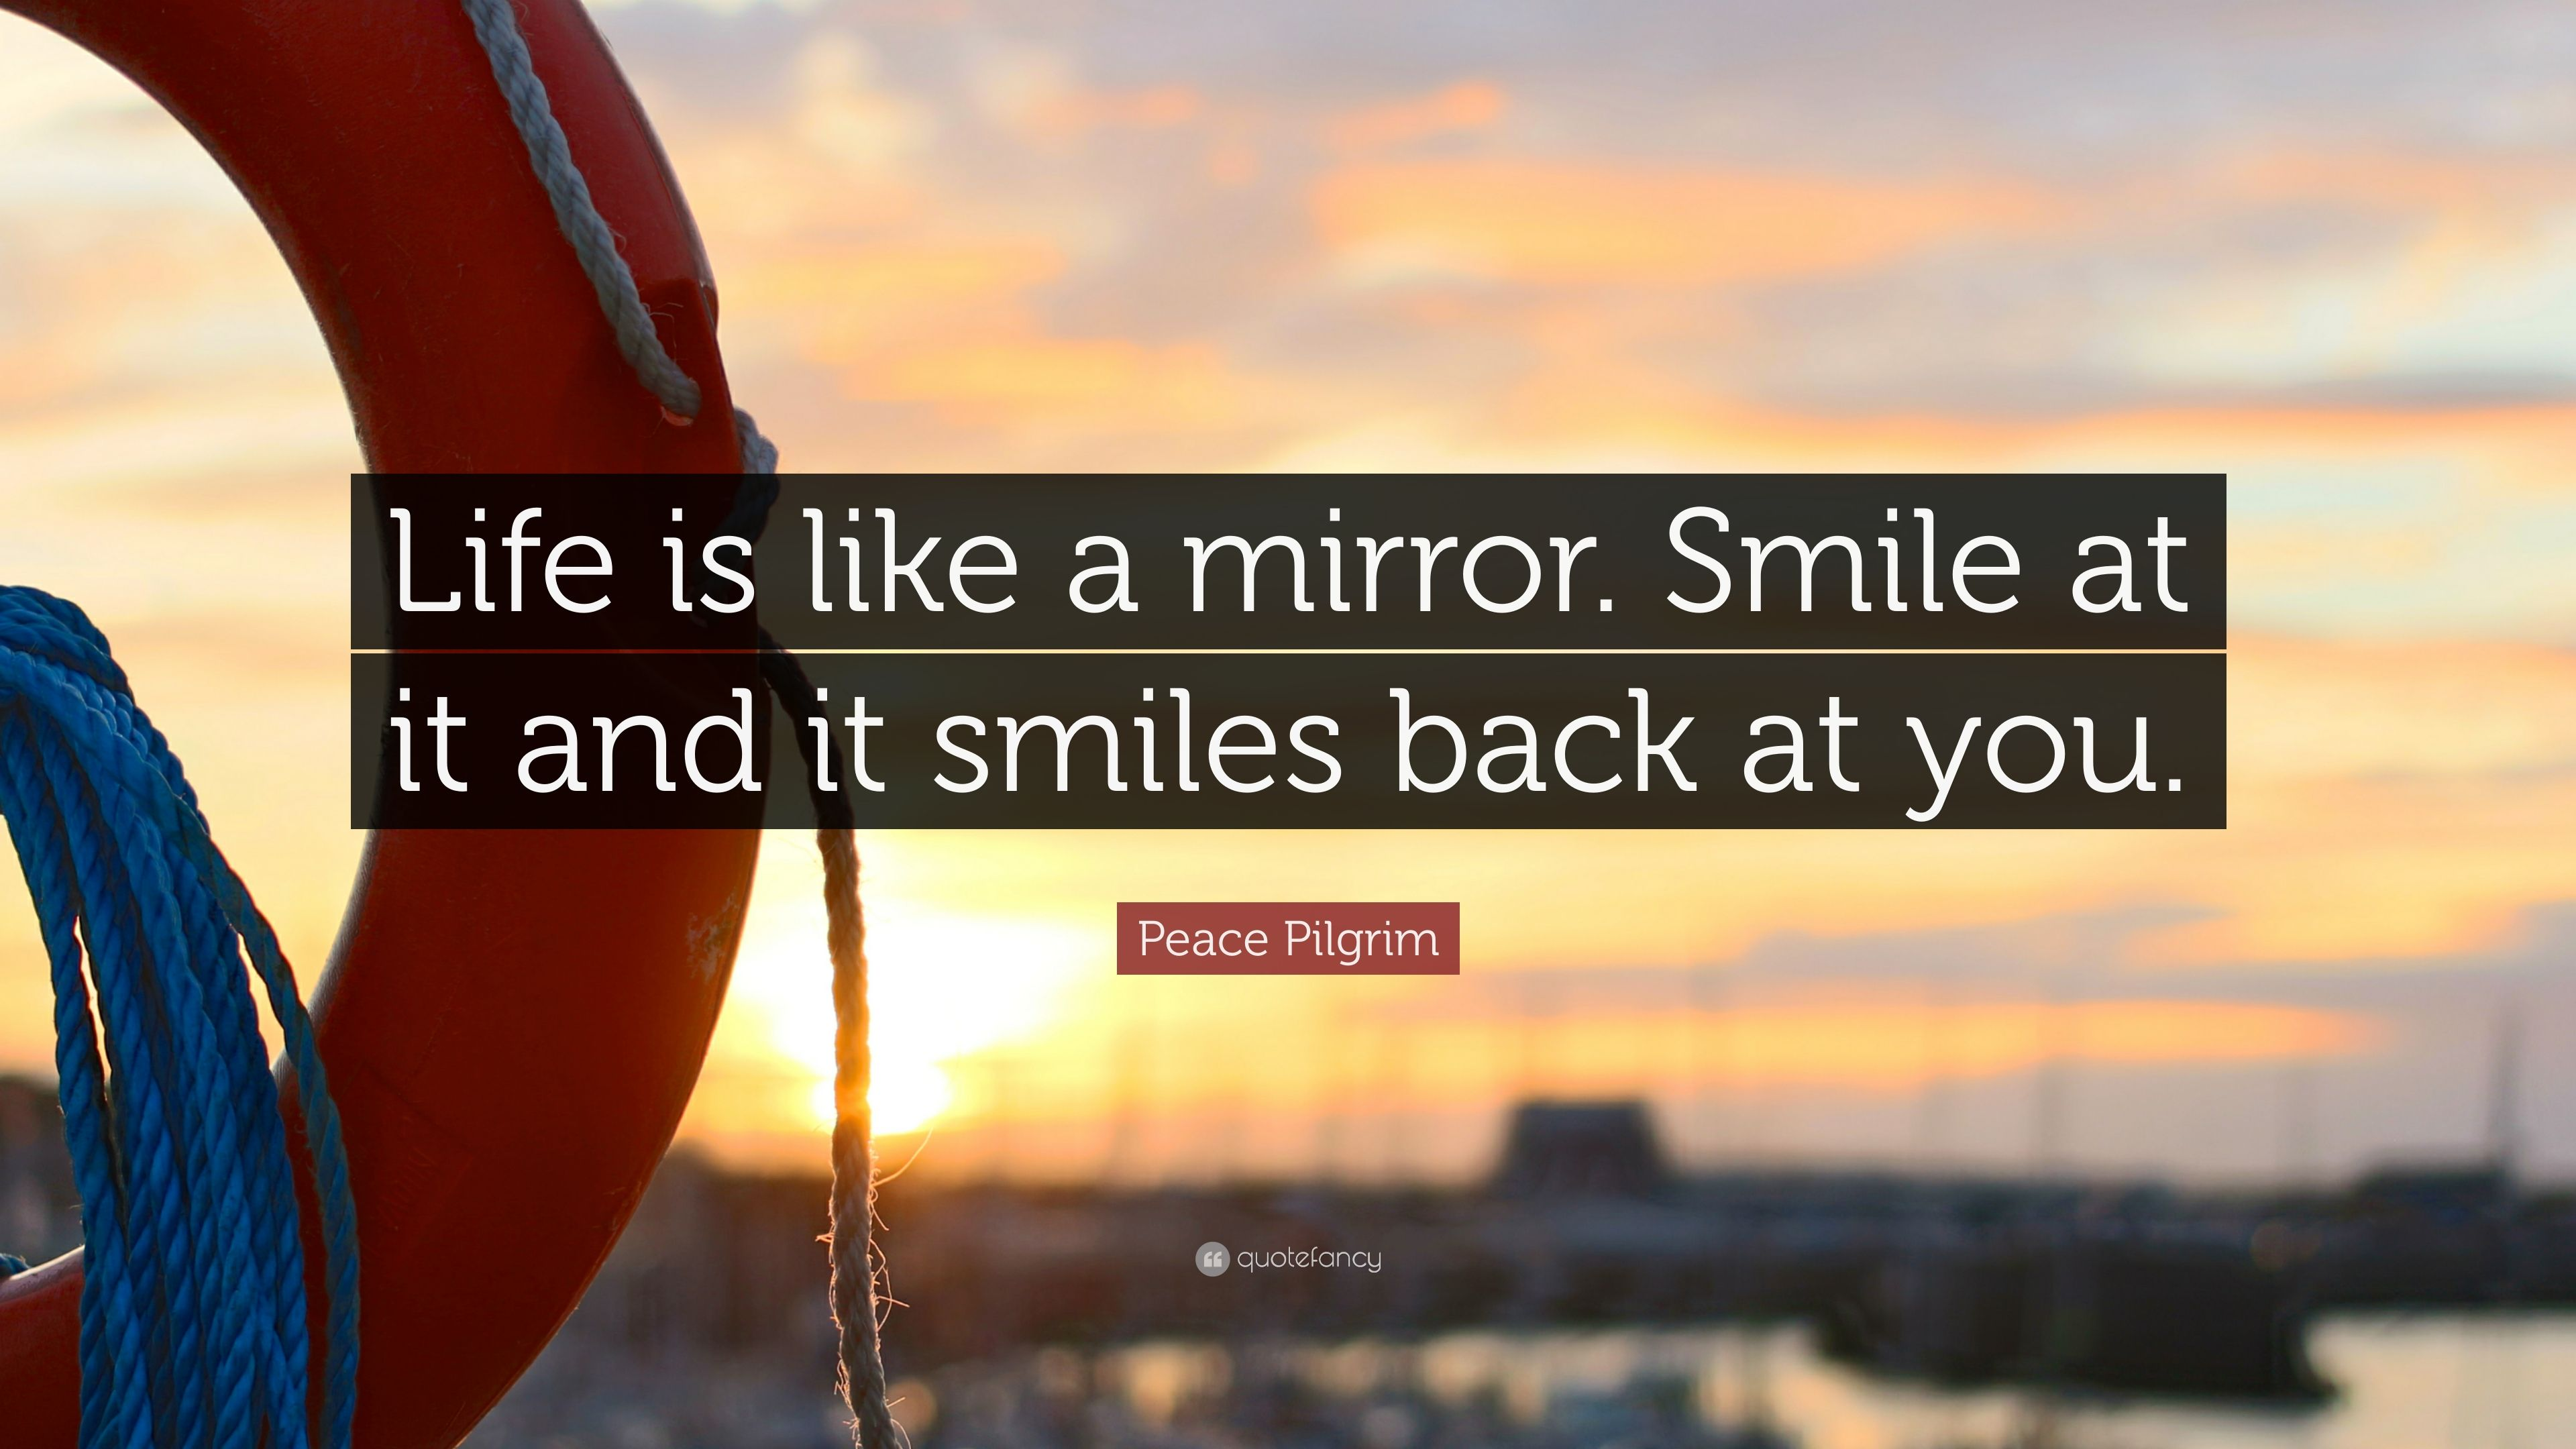 Peace Pilgrim Quote Life Is Like A Mirror Smile At It And It Smiles Back At You 12